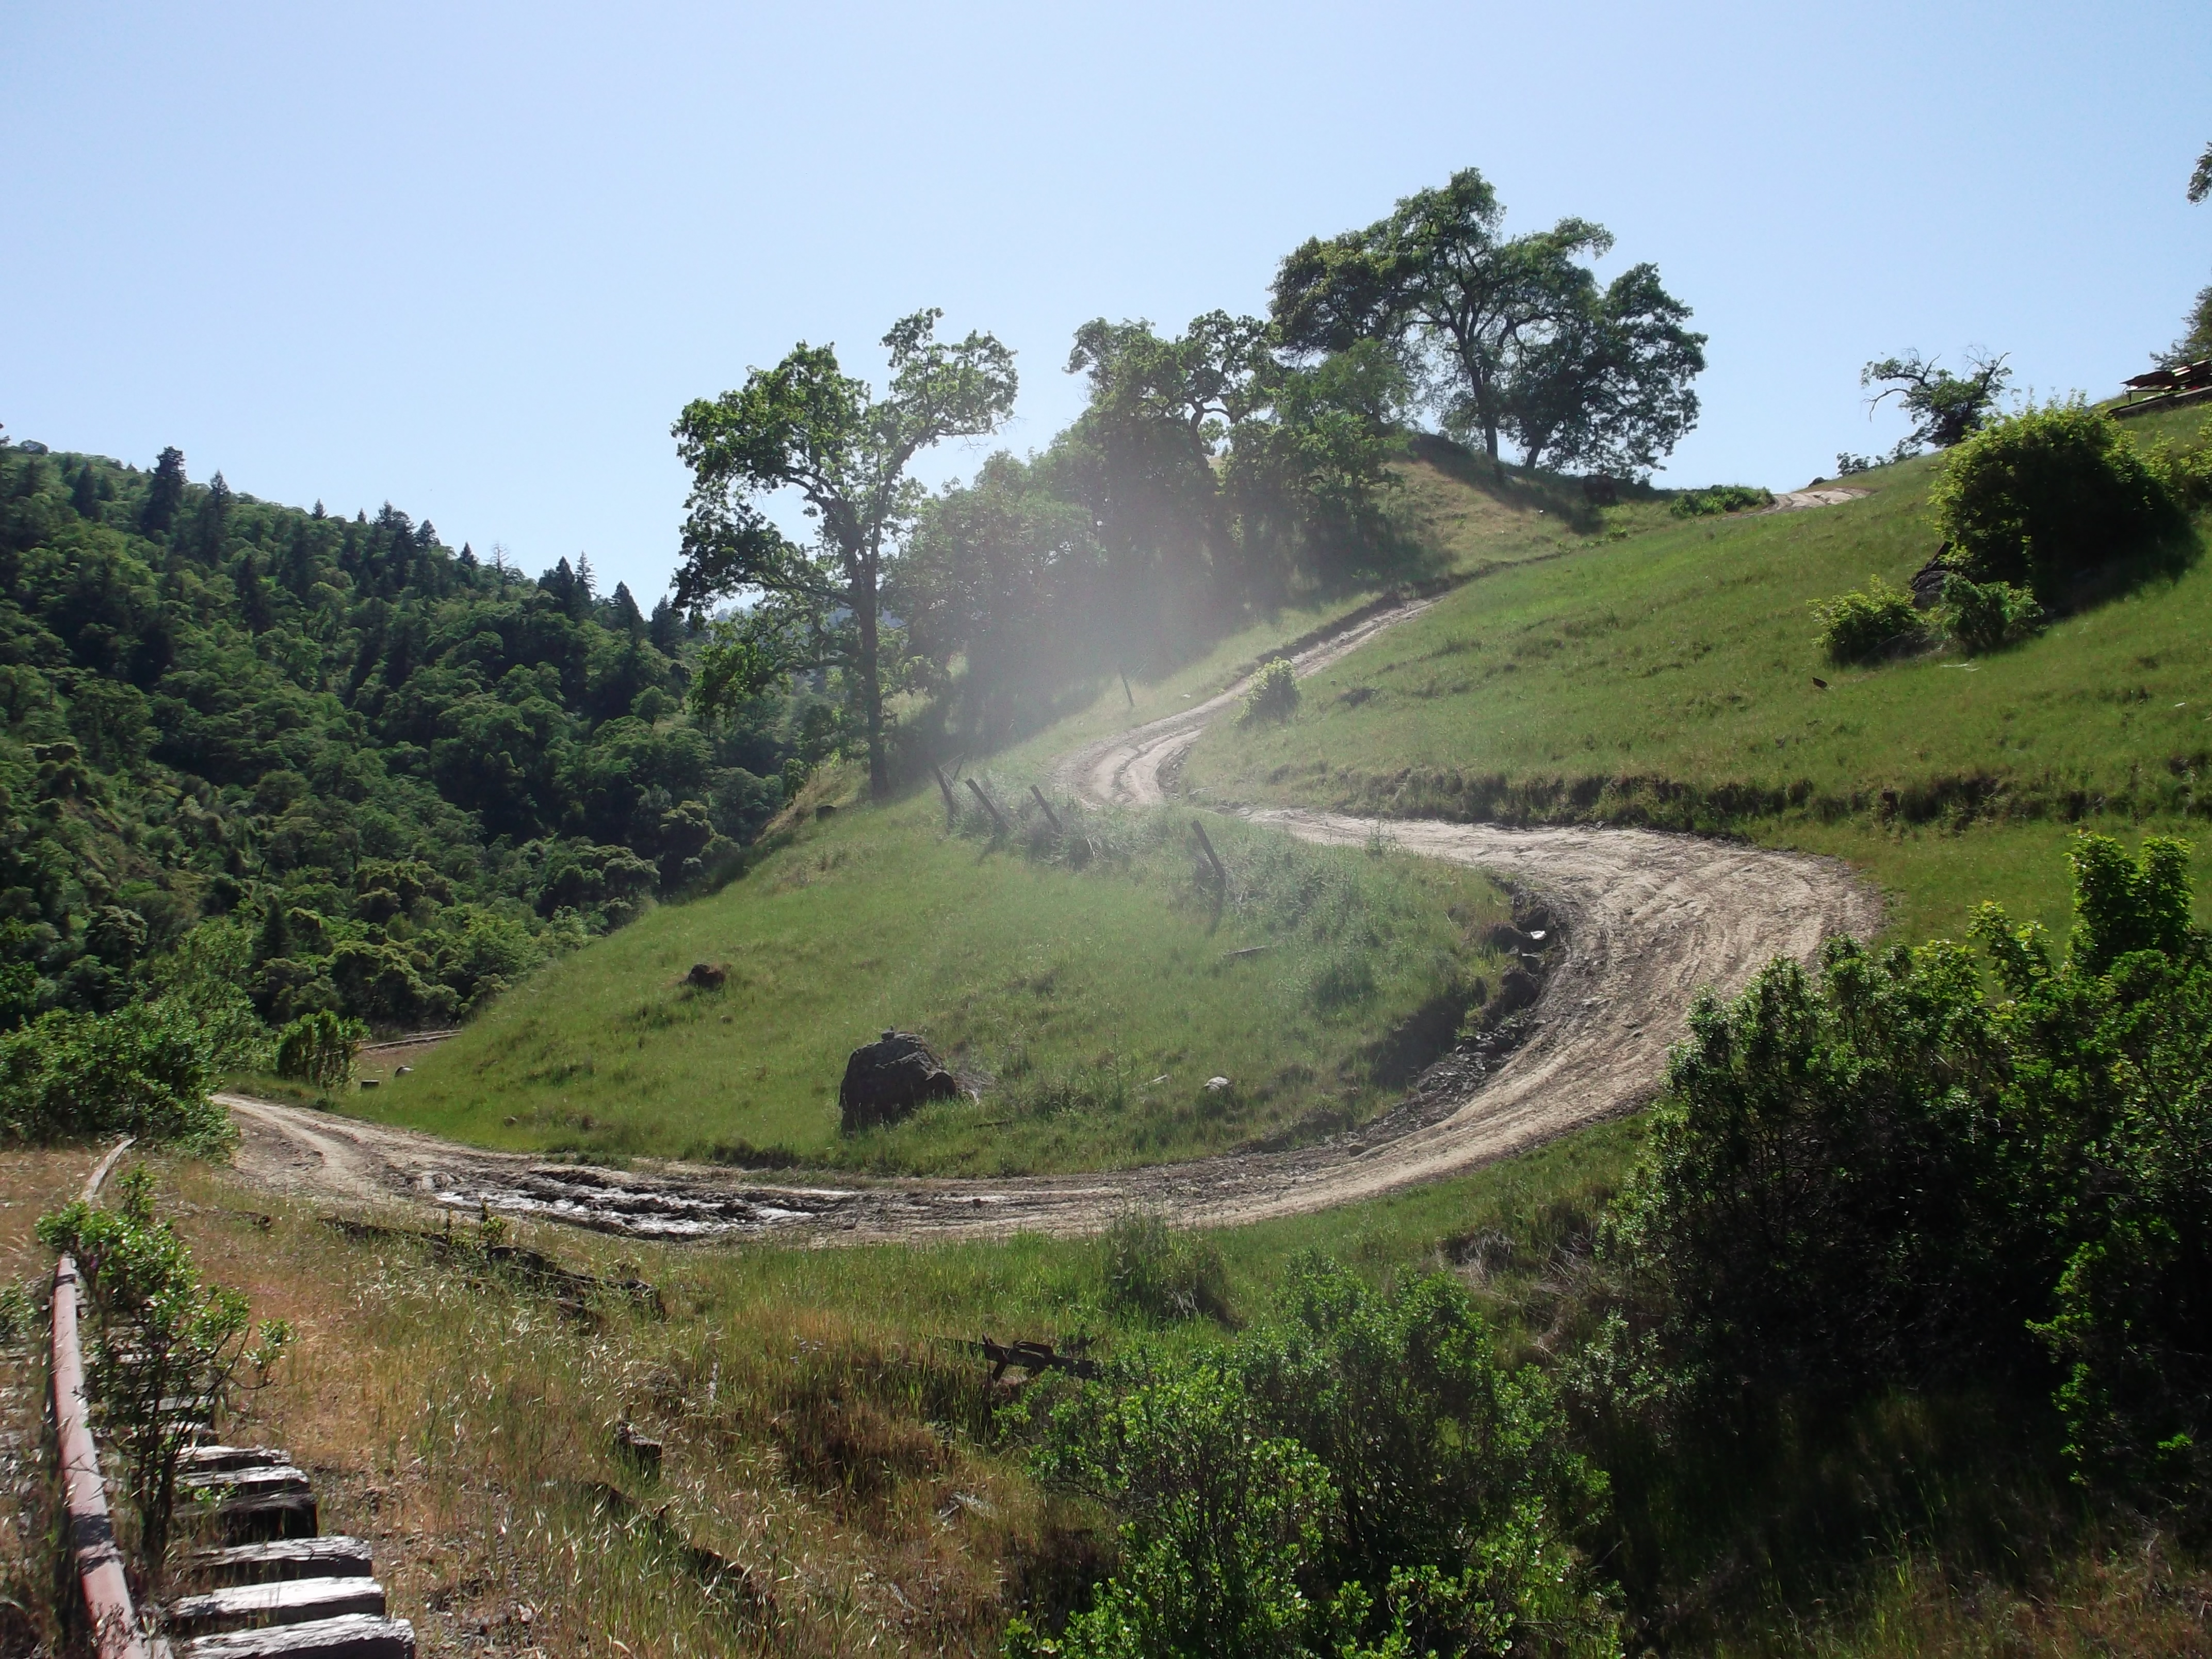 Private ranch road, Mendocino County. (photo by D. Sperededelozzi)